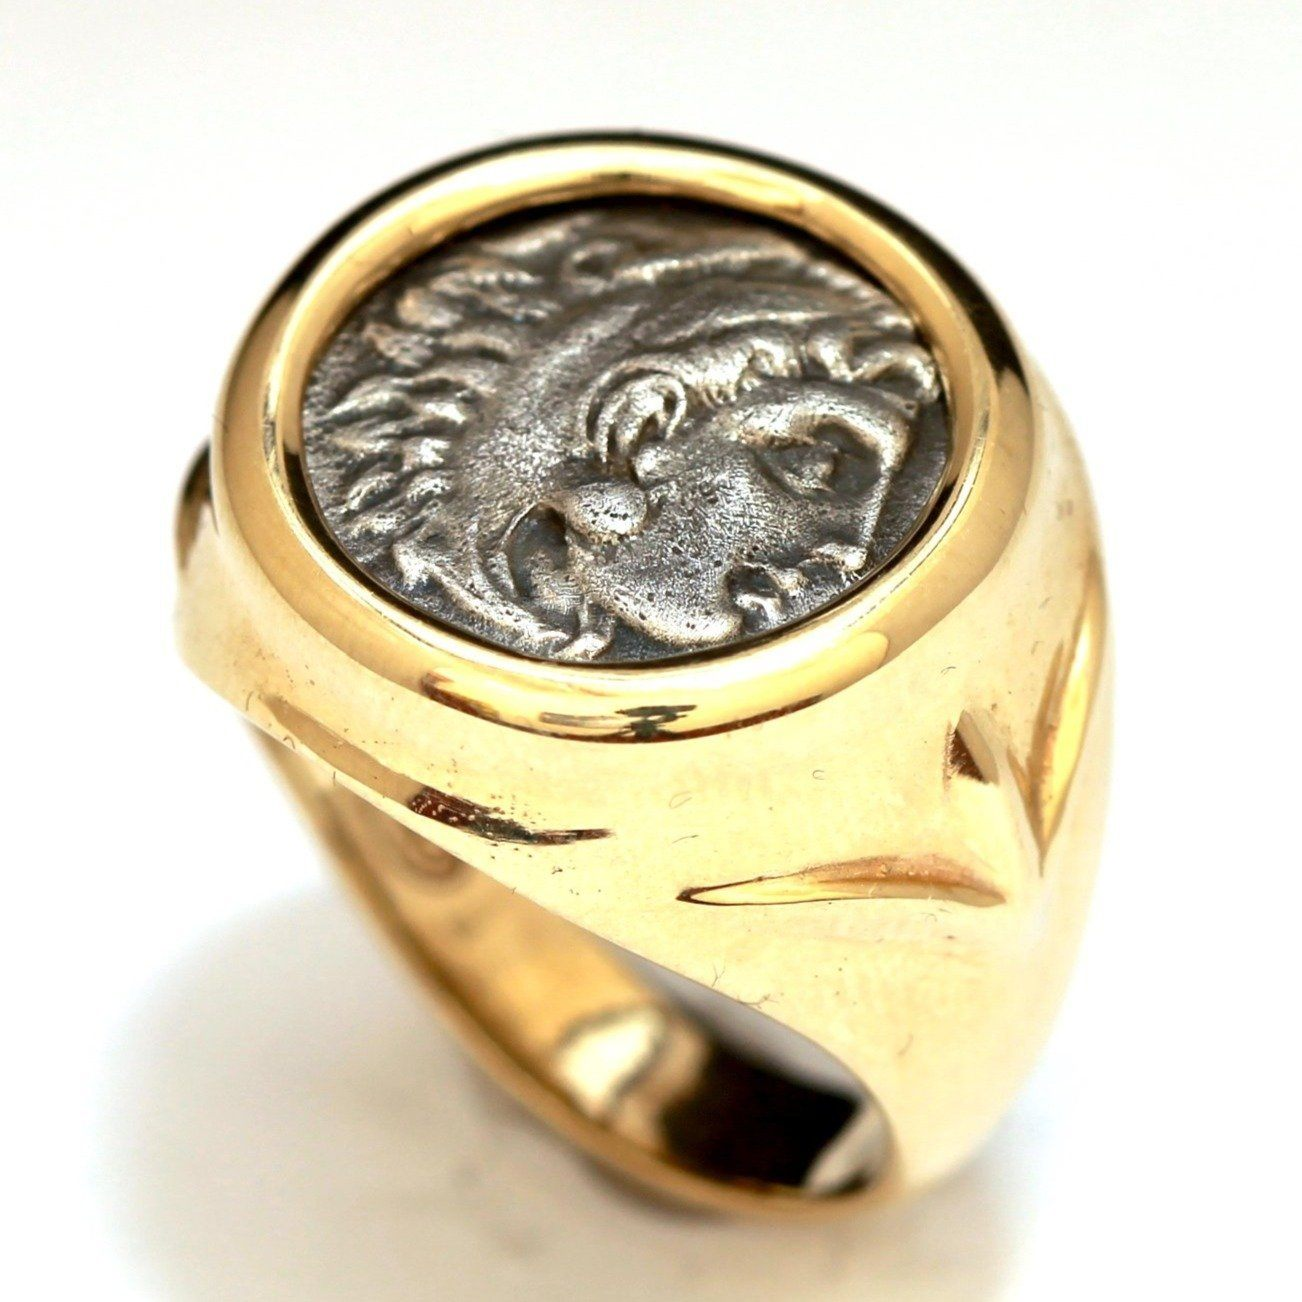 Alexander the Great Coin, Gold Ring, Genuine Ancient Coin w/ Certificate ID13080 - Erez Ancient Coin Jewelry, ancient coin jewelry, men jewelry, genuine ancient coins, made in the US